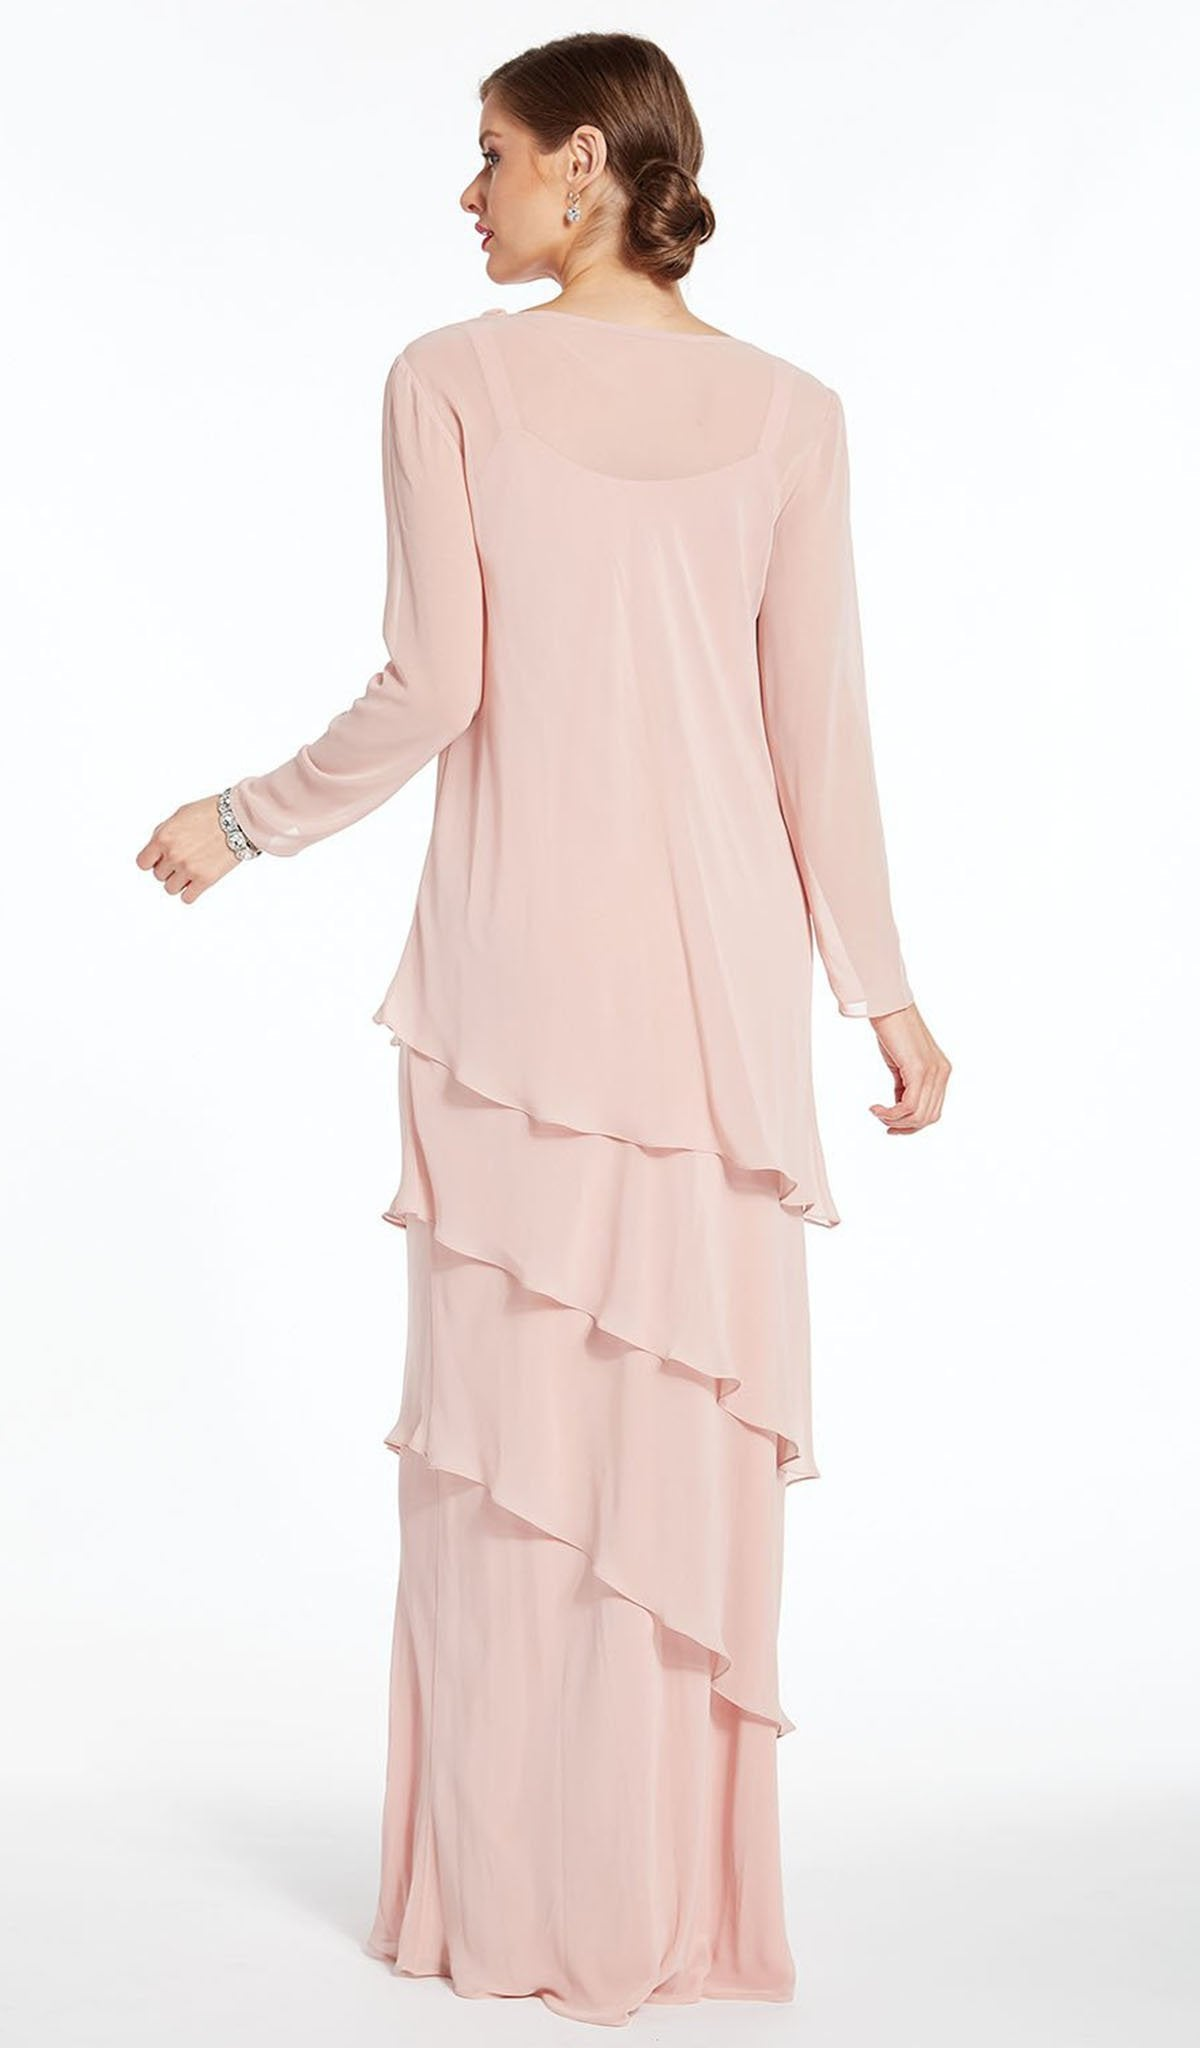 Alyce Paris - Long Sleeve Cowl Neck Tiered Sheath Gown 27298 In Pink